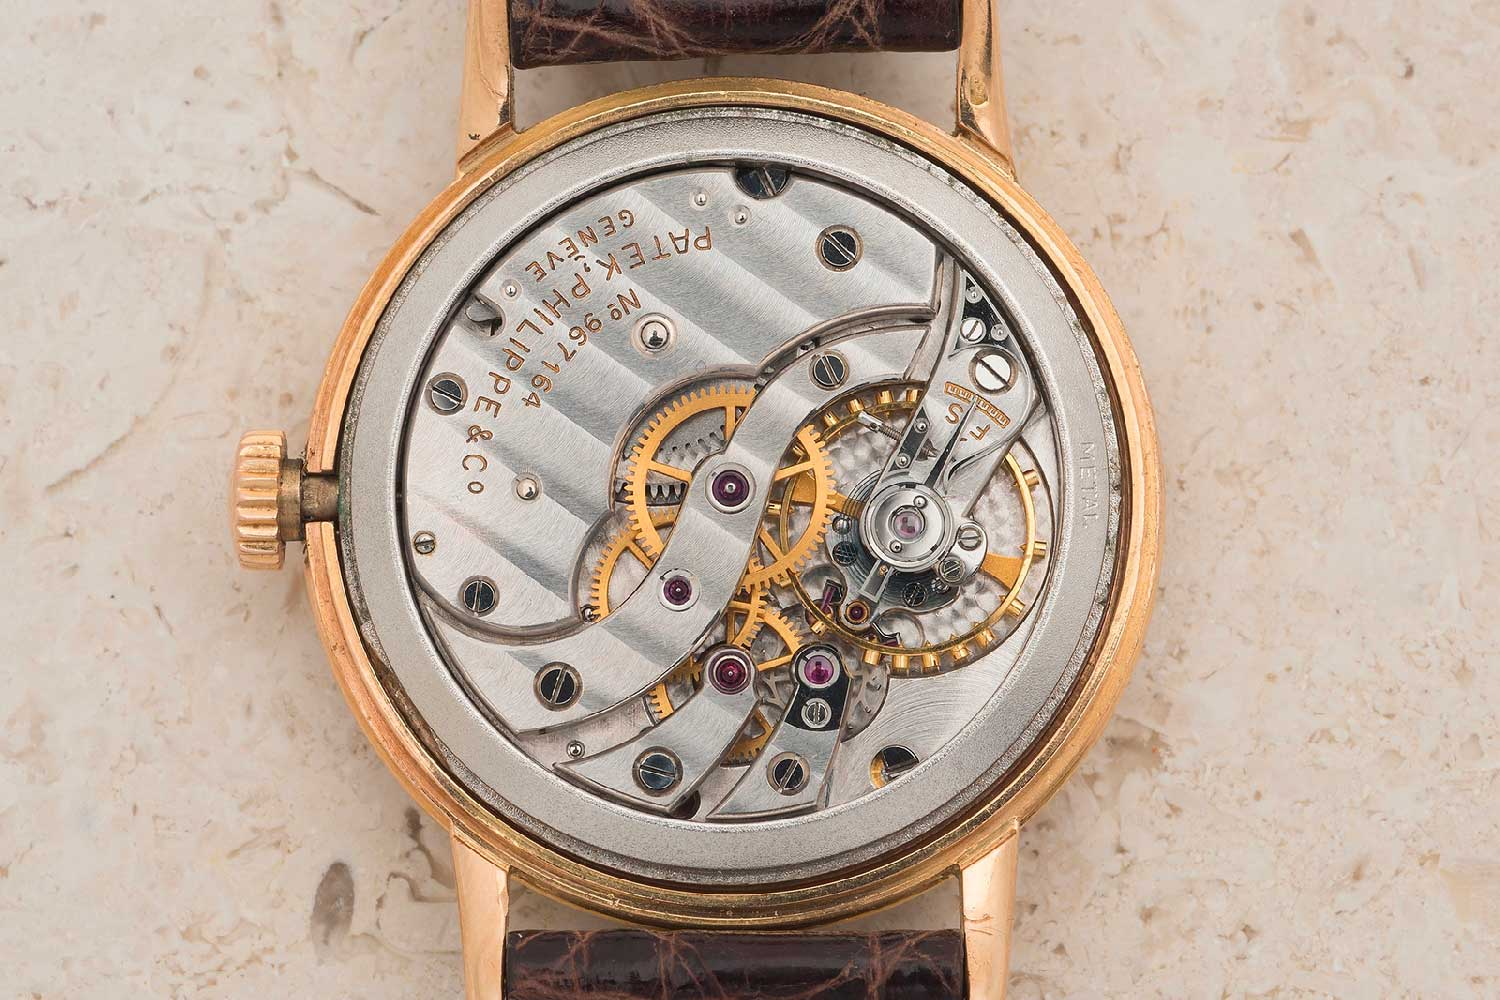 The in-house calibre 12-120 (Image: Bukowskis)